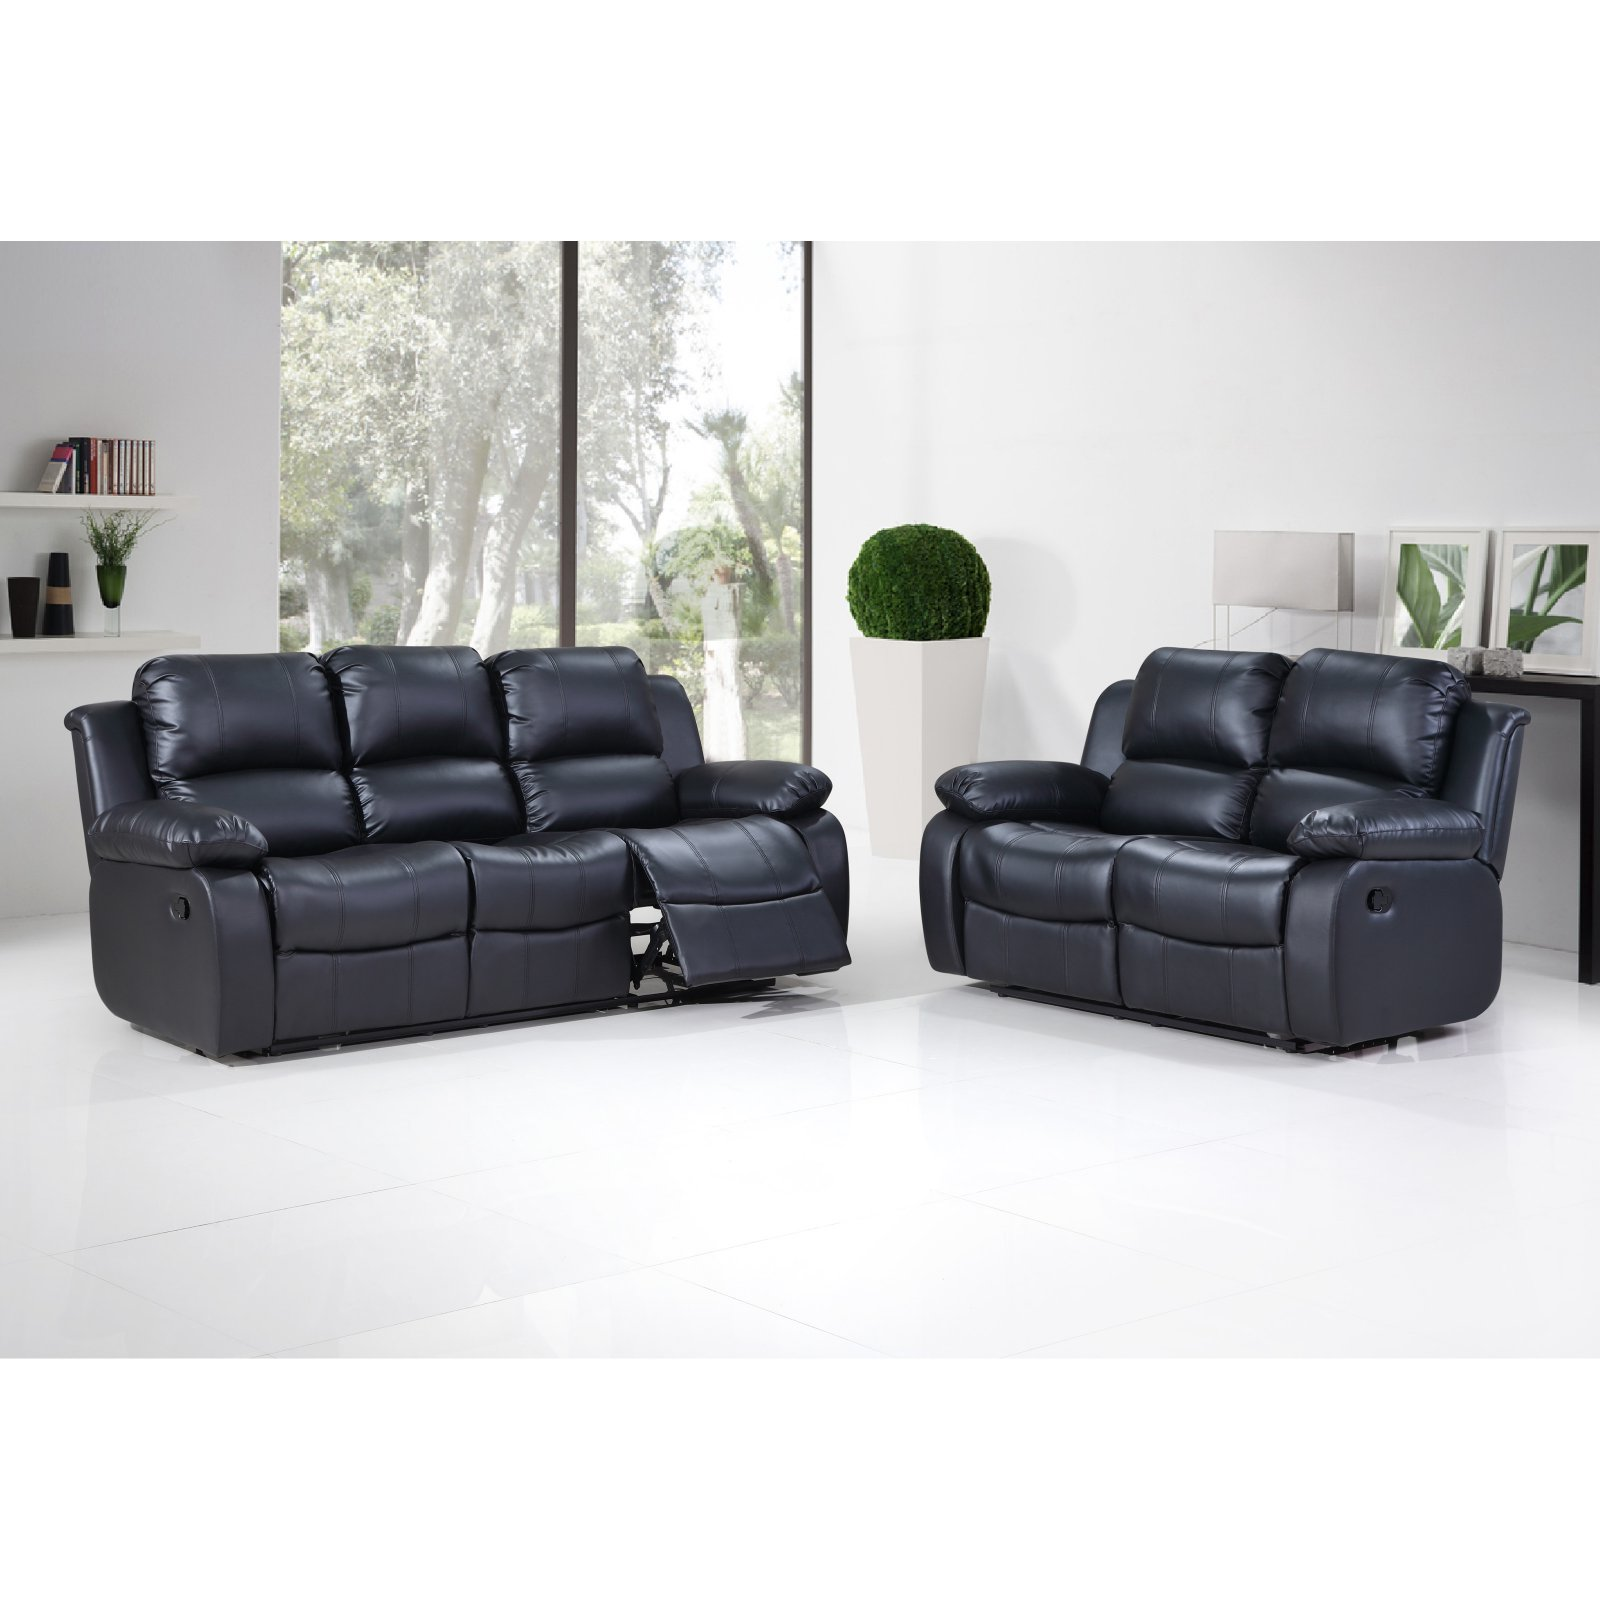 sofa and loveseat set up disassemble recliner hodedah imports 3 seat reclining walmart com